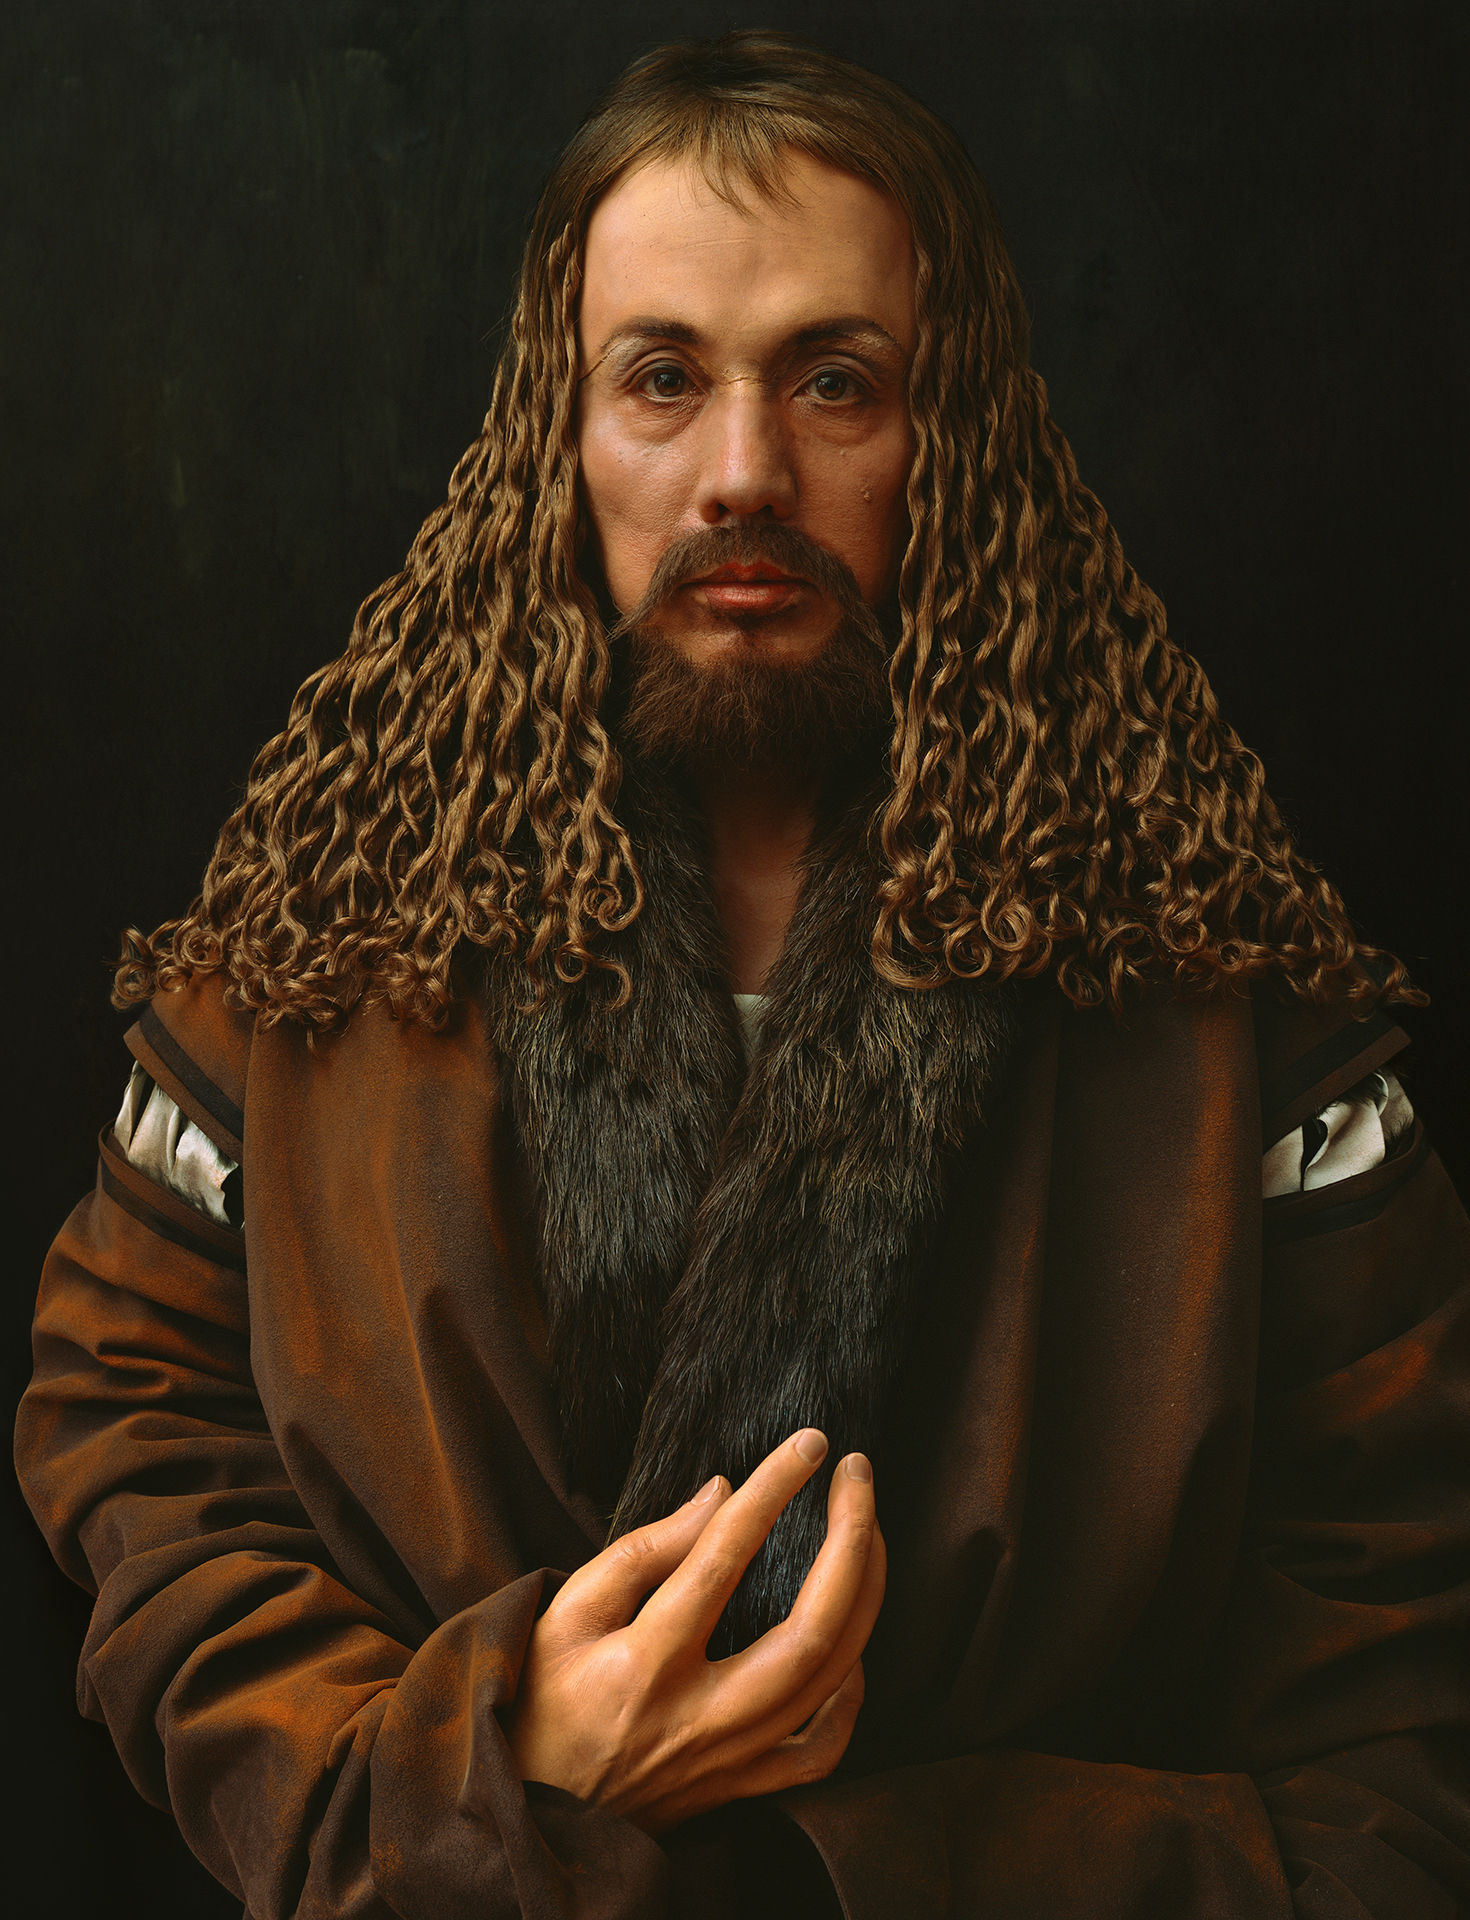 Self-Portraits through Art History (Dürer's Hand is Another Face), 2016. Courtesy of the artist and Luhring Augustine, New York. © Yasumasa Morimura